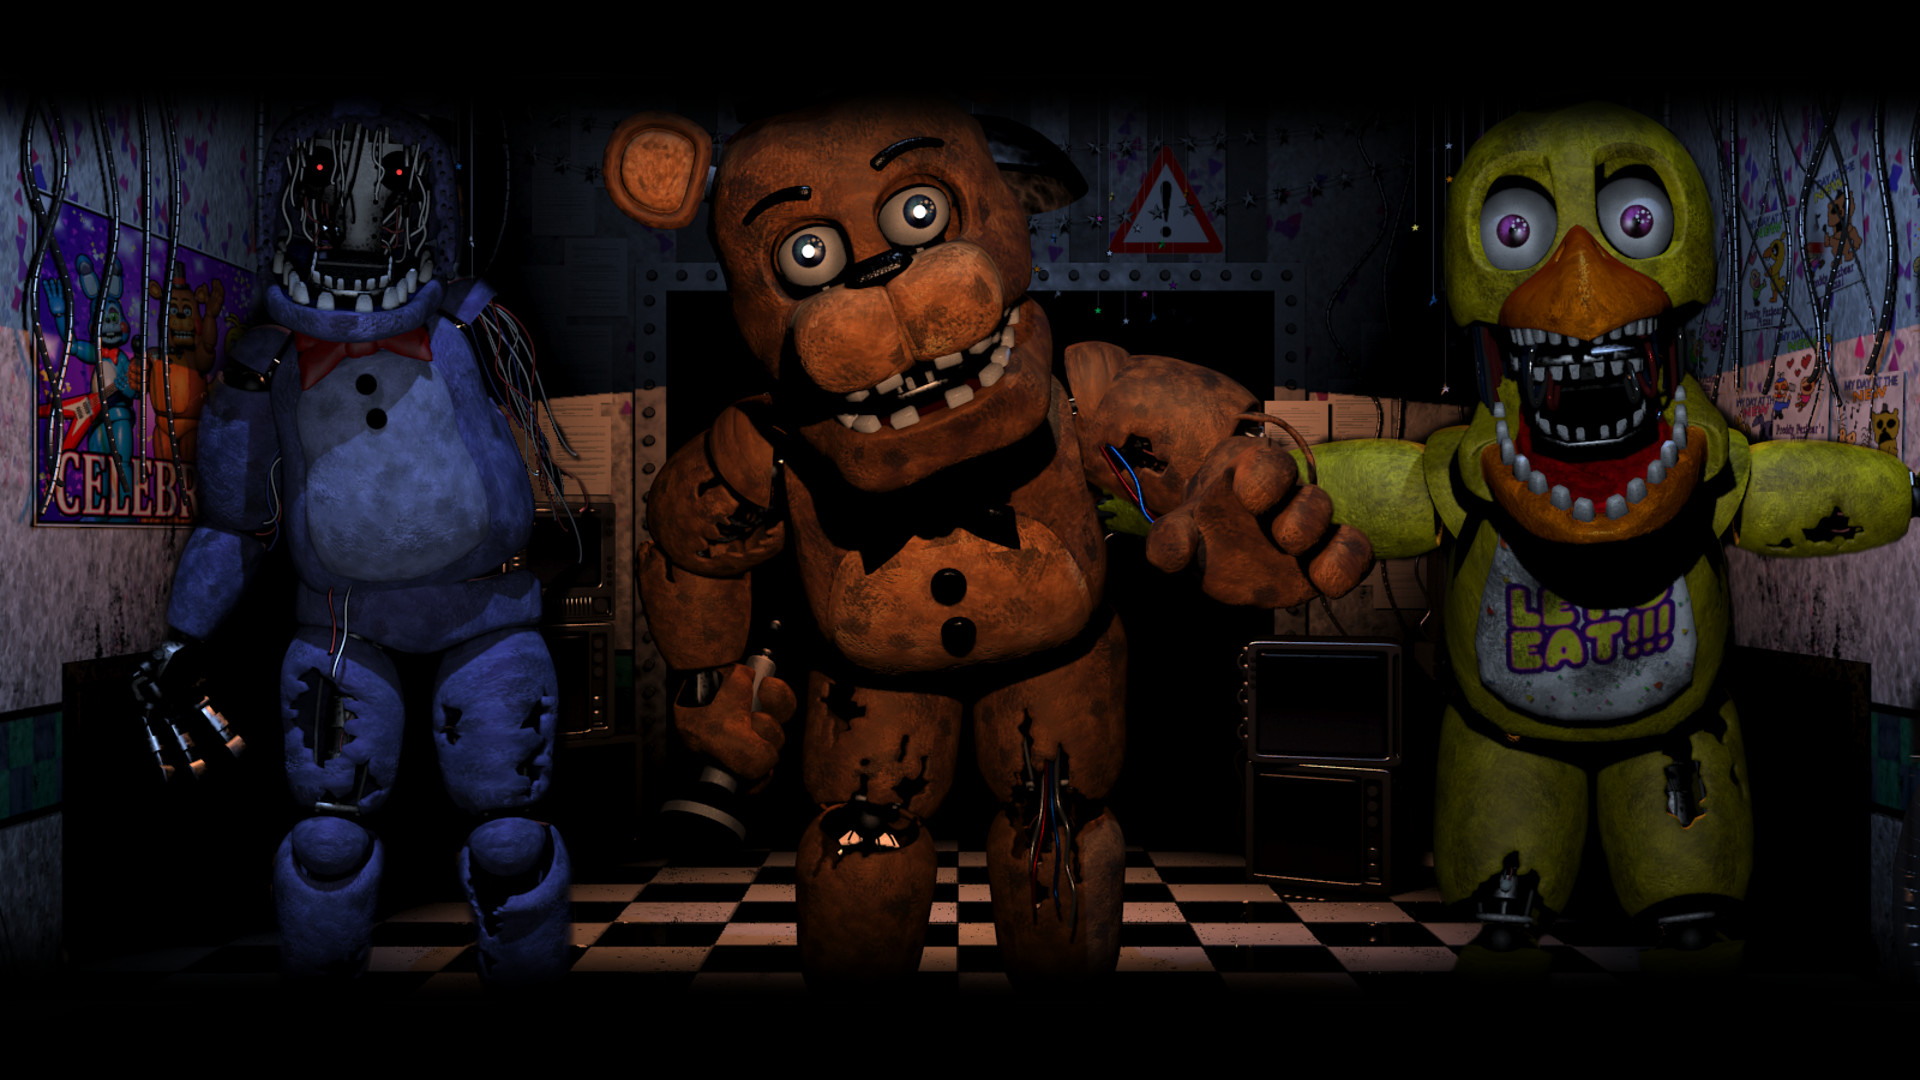 Res: 1920x1080, Old Gang ( Five Nights At Freddy's 2 Wallpaper) by BloodyHorrible